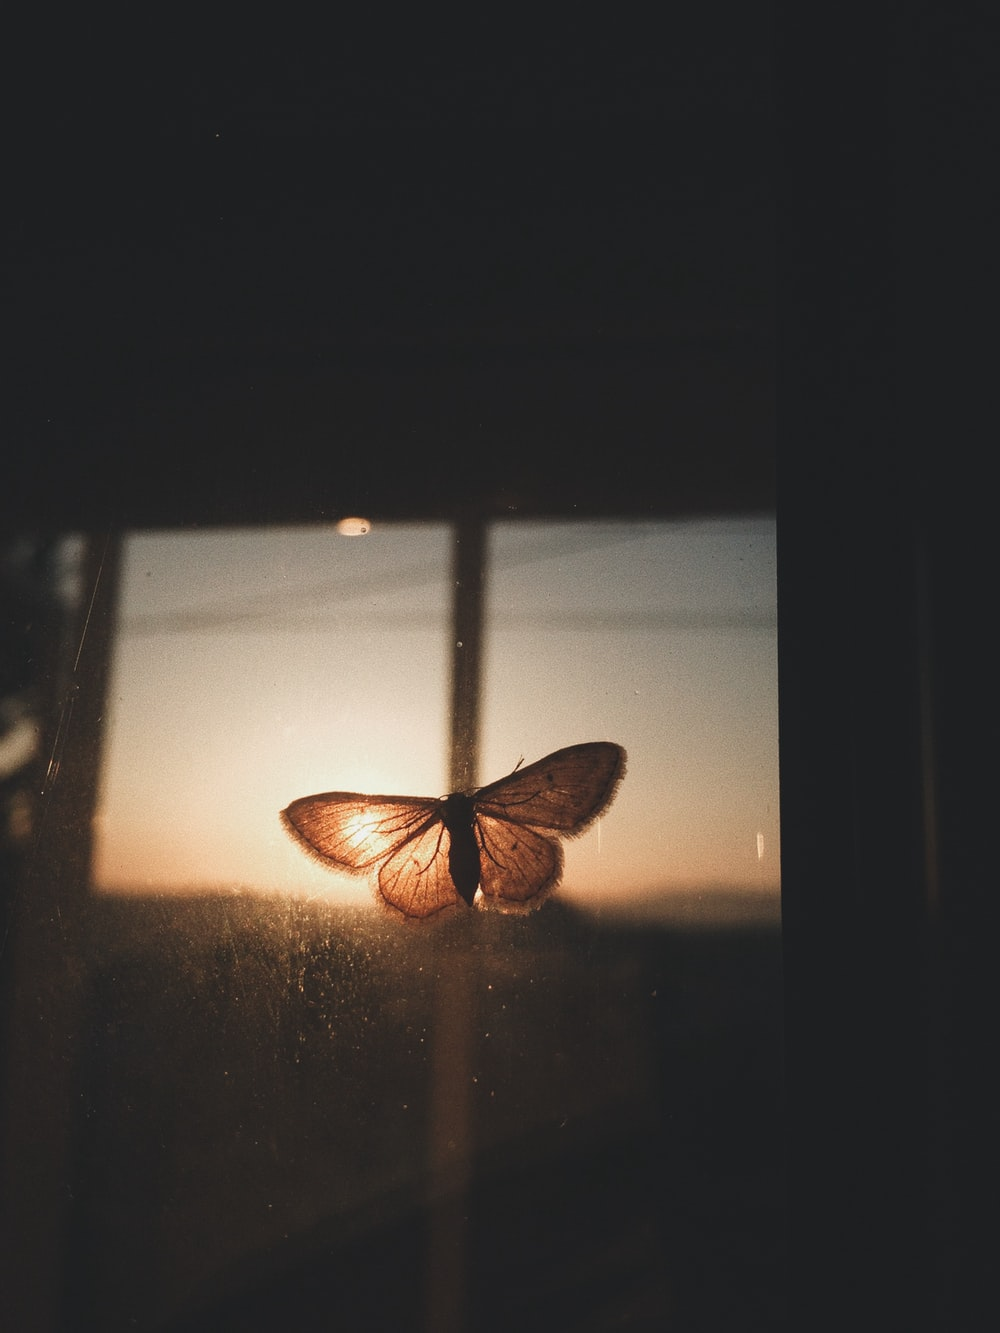 butterfly on clear glass sheet in selective focus photography